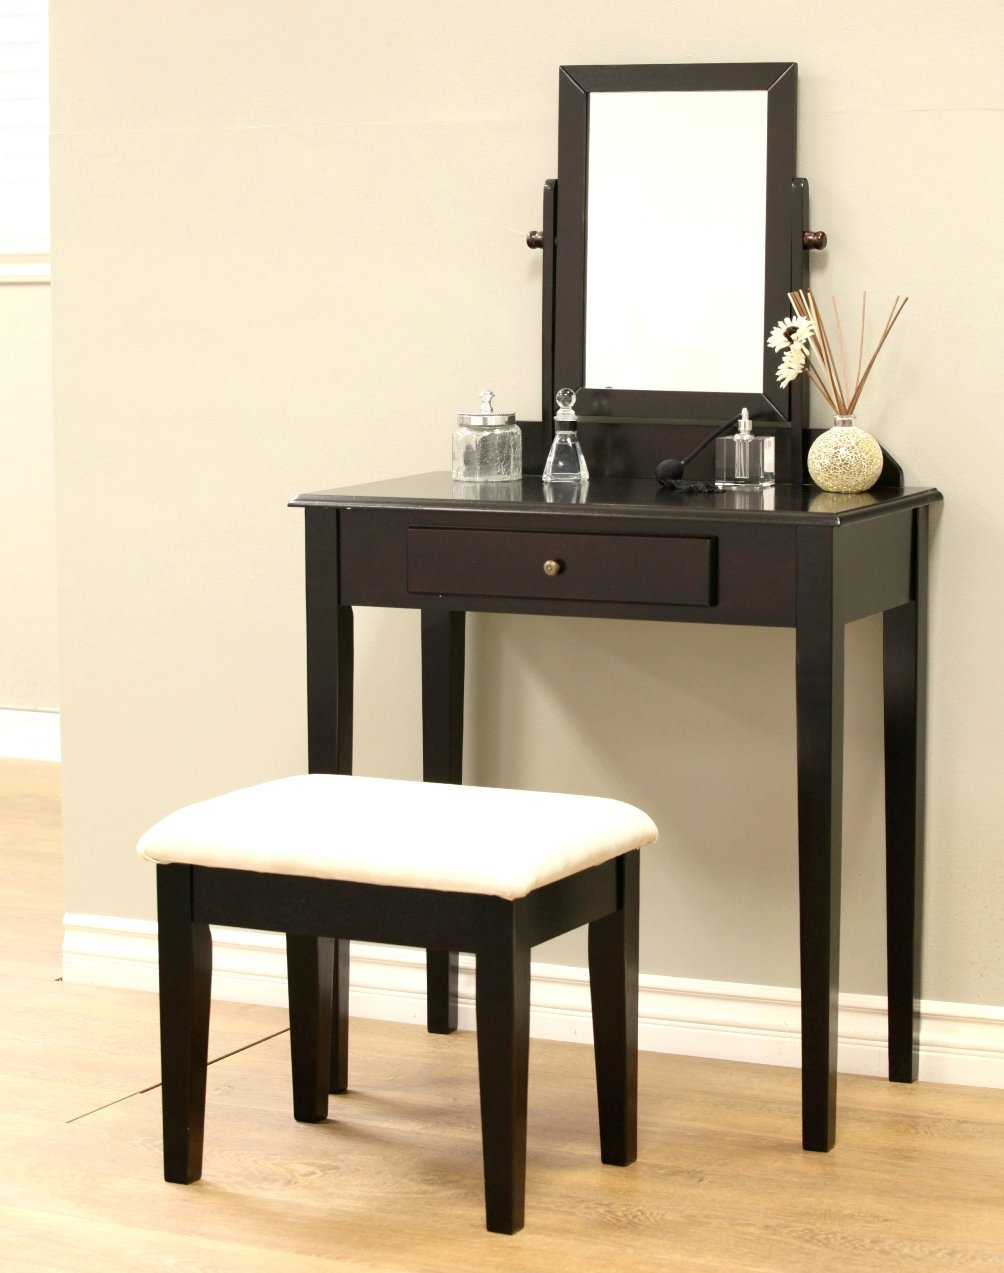 W-HY-0610 French Furniture dressing table Wood 3 Pc Vanity Set in Espresso Finish